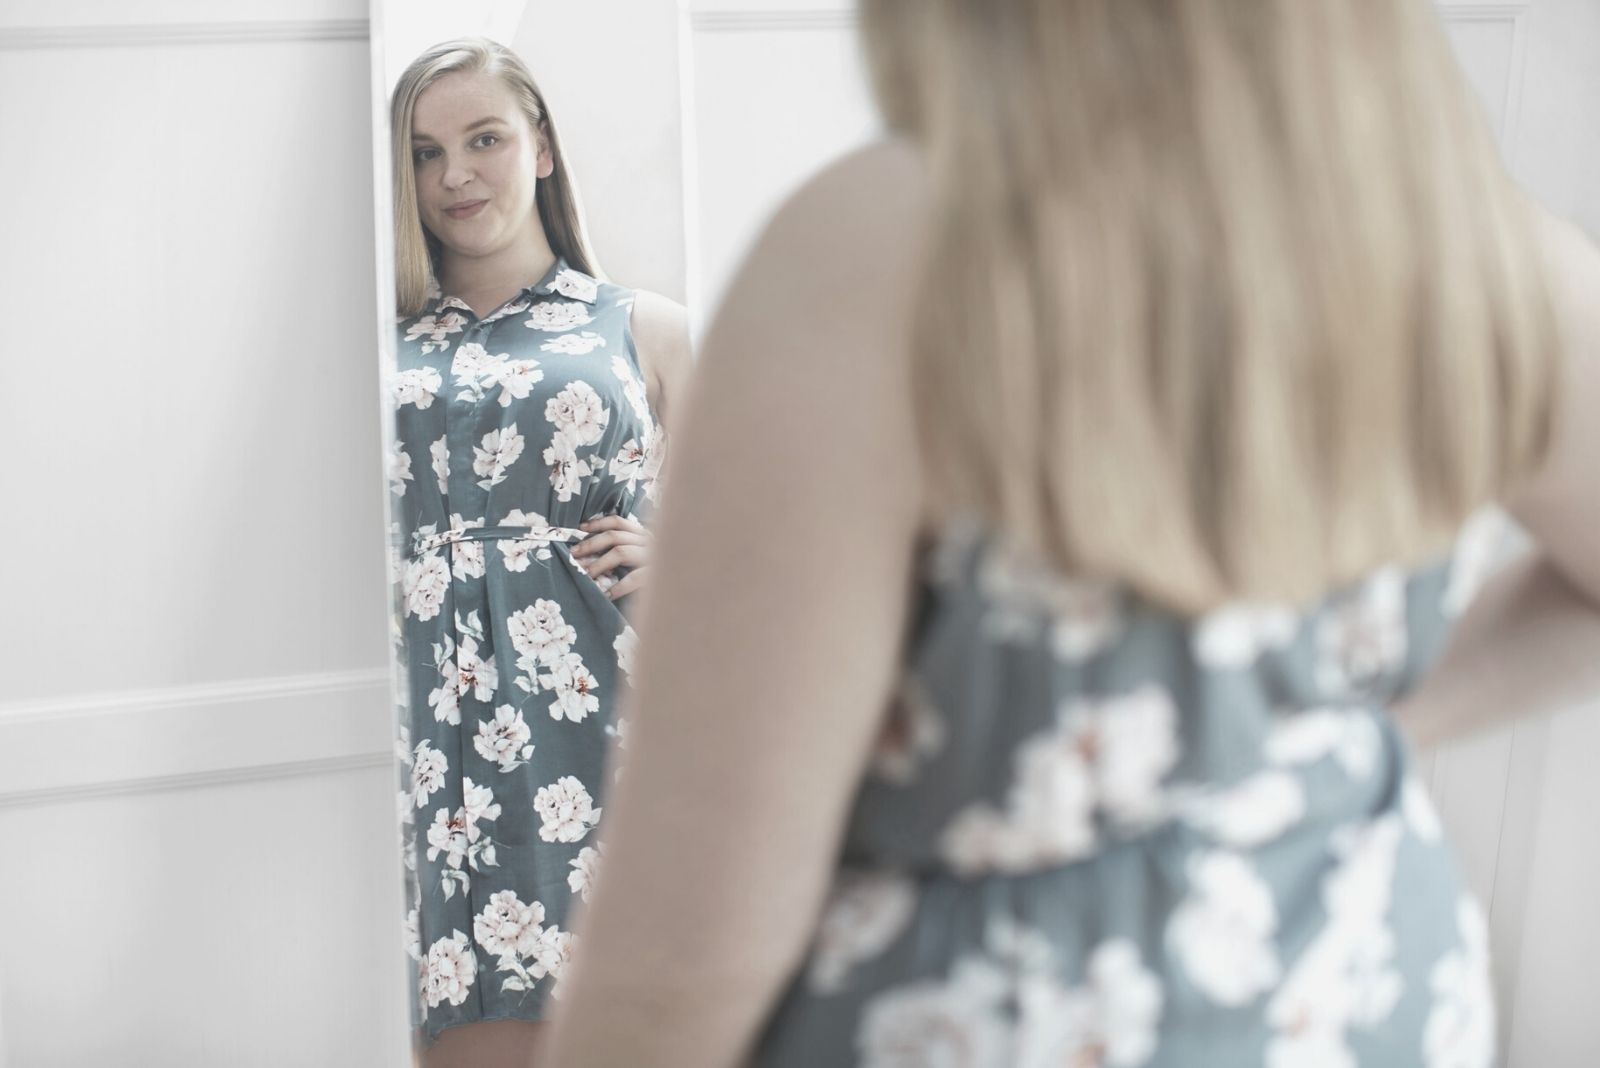 young woman looking at her body smiling at the mirror wearing floral dress